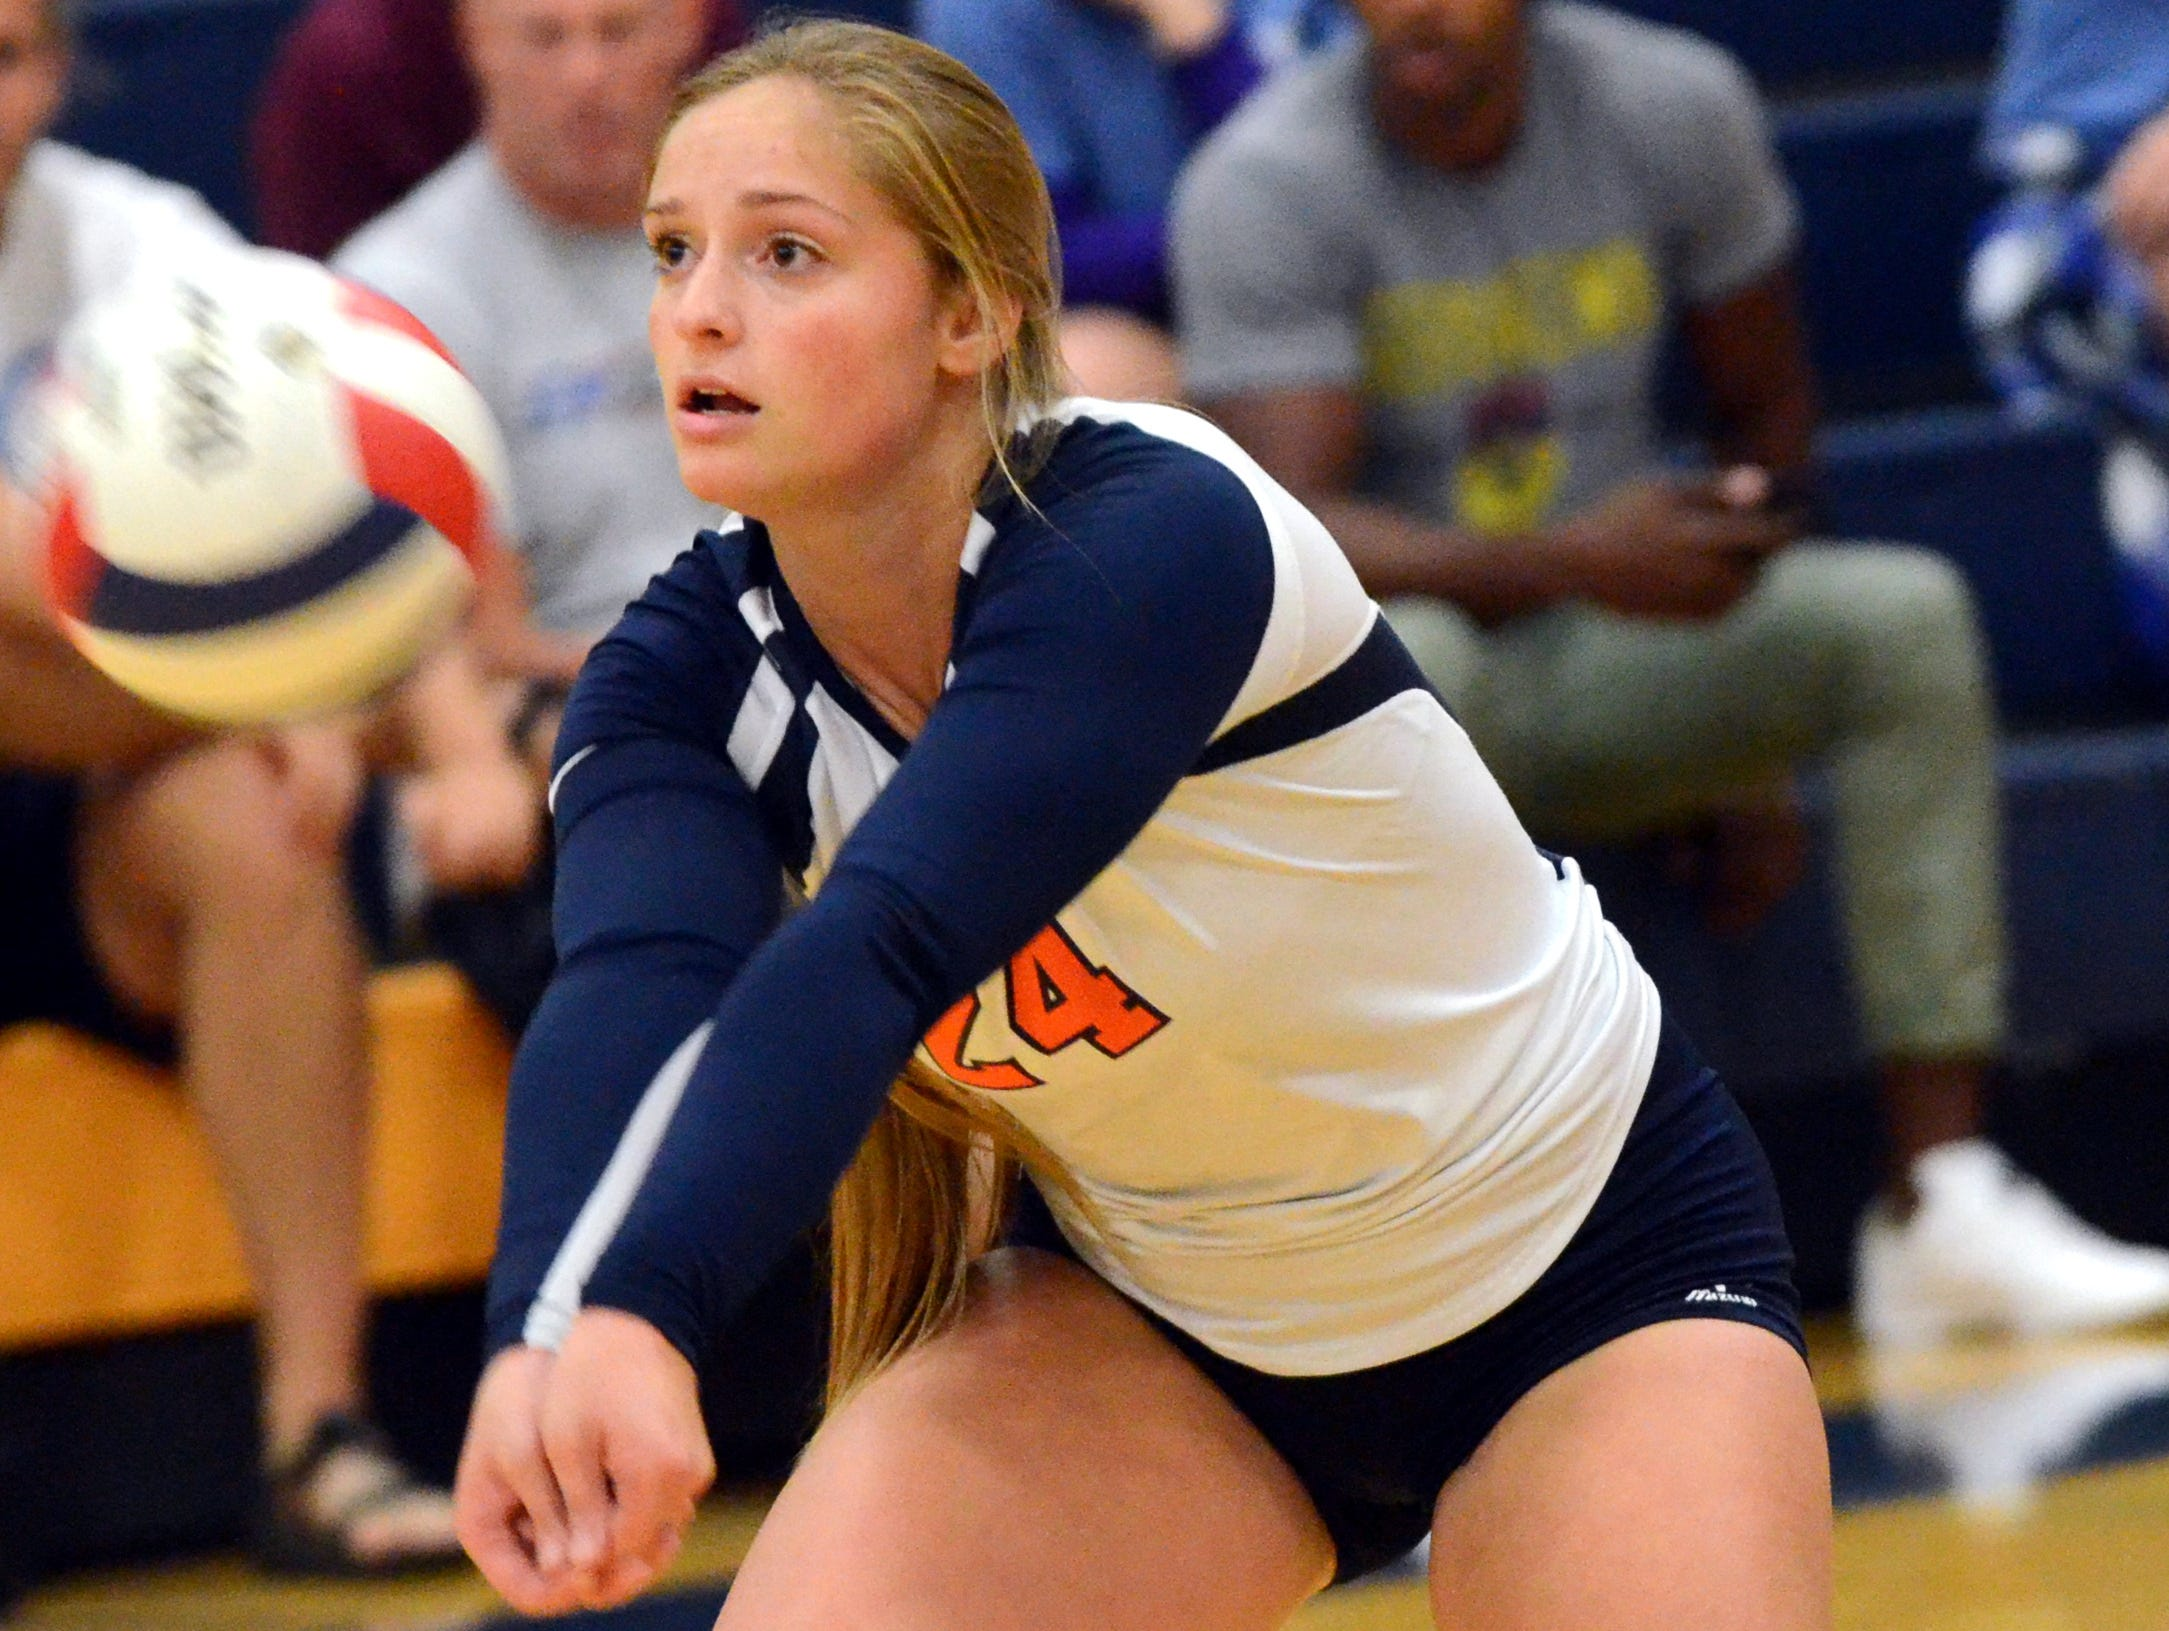 Beech High senior Saidee McDaniel passes a serve during the first game.